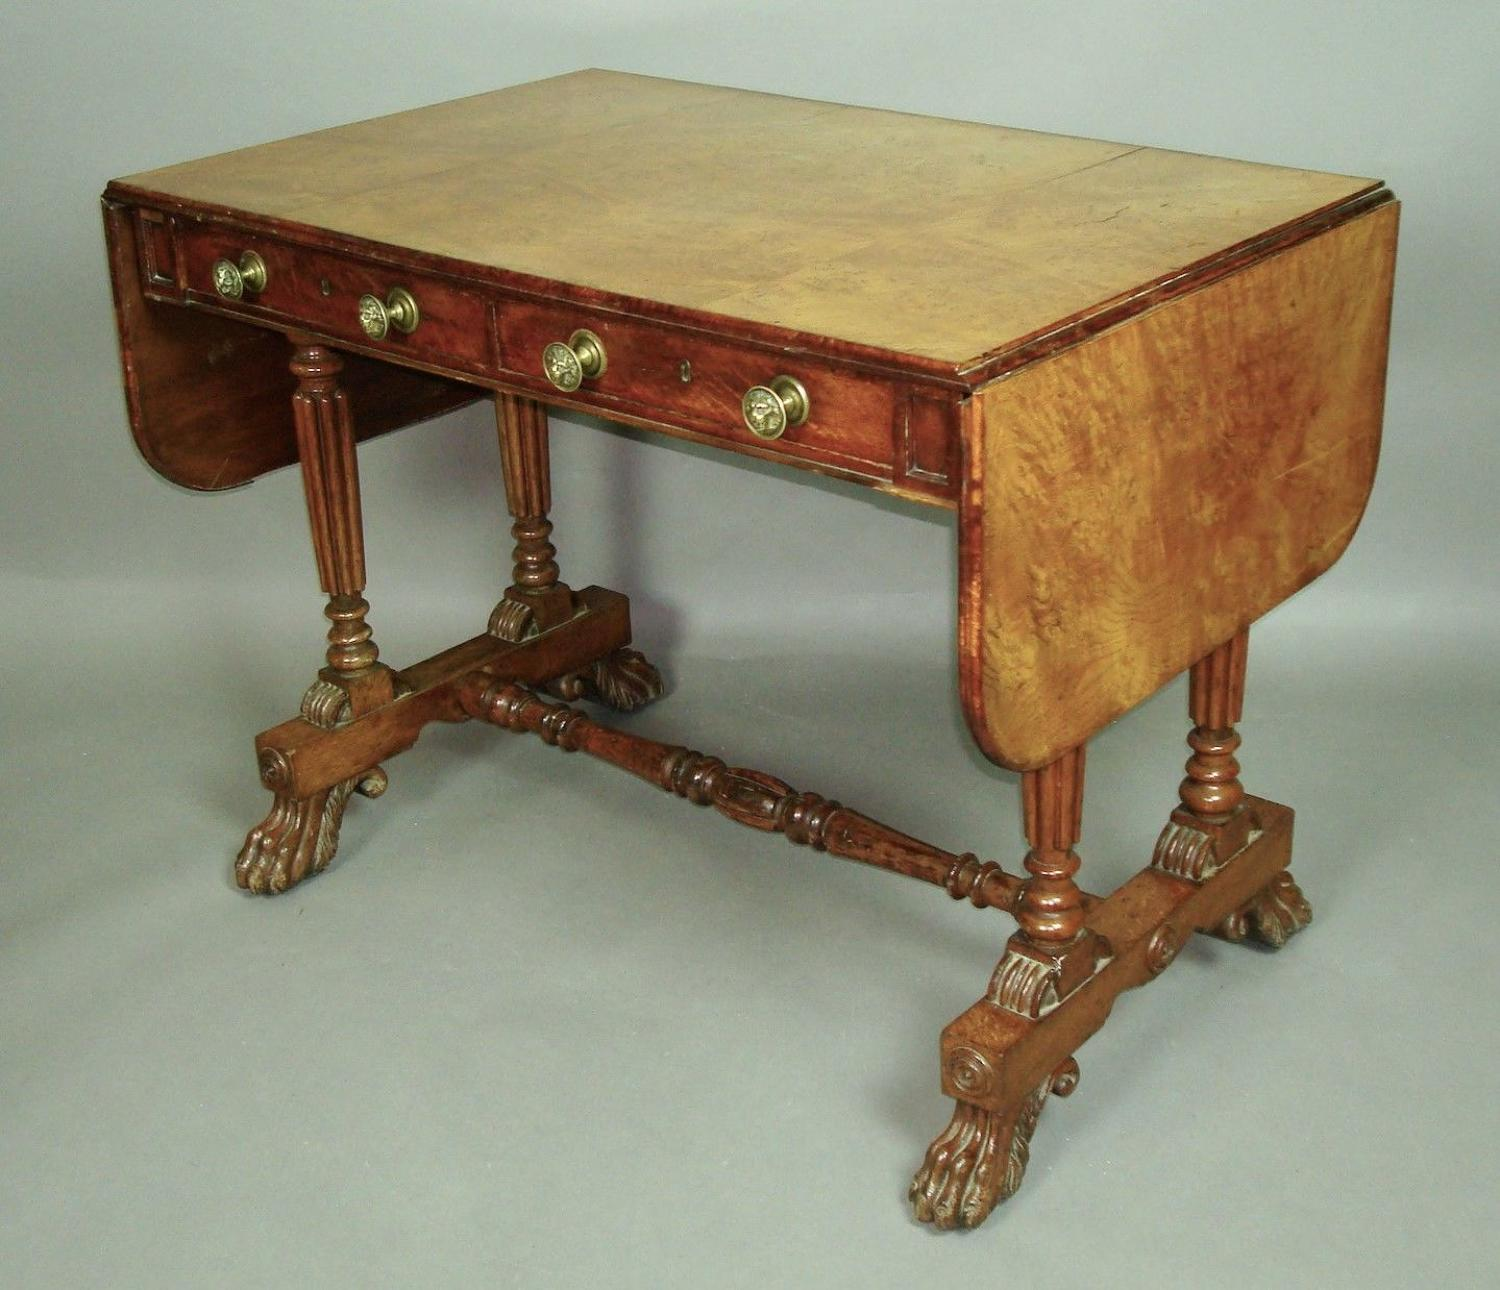 Regency oak and burr elm George Bullock sofa table